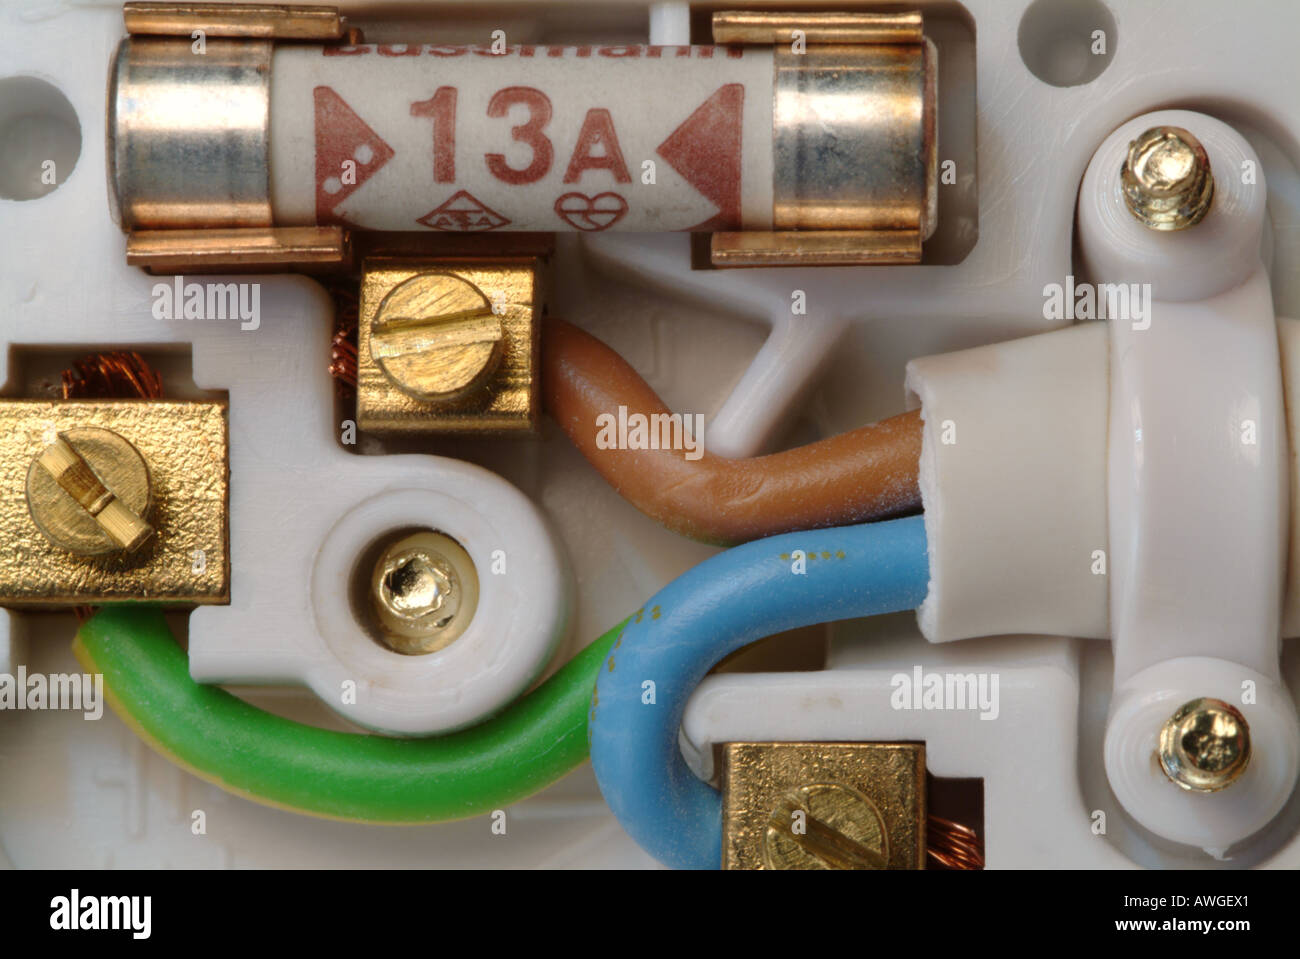 Close-up showing the inside of a standard british 13 amp electrical plug. Stock Photo